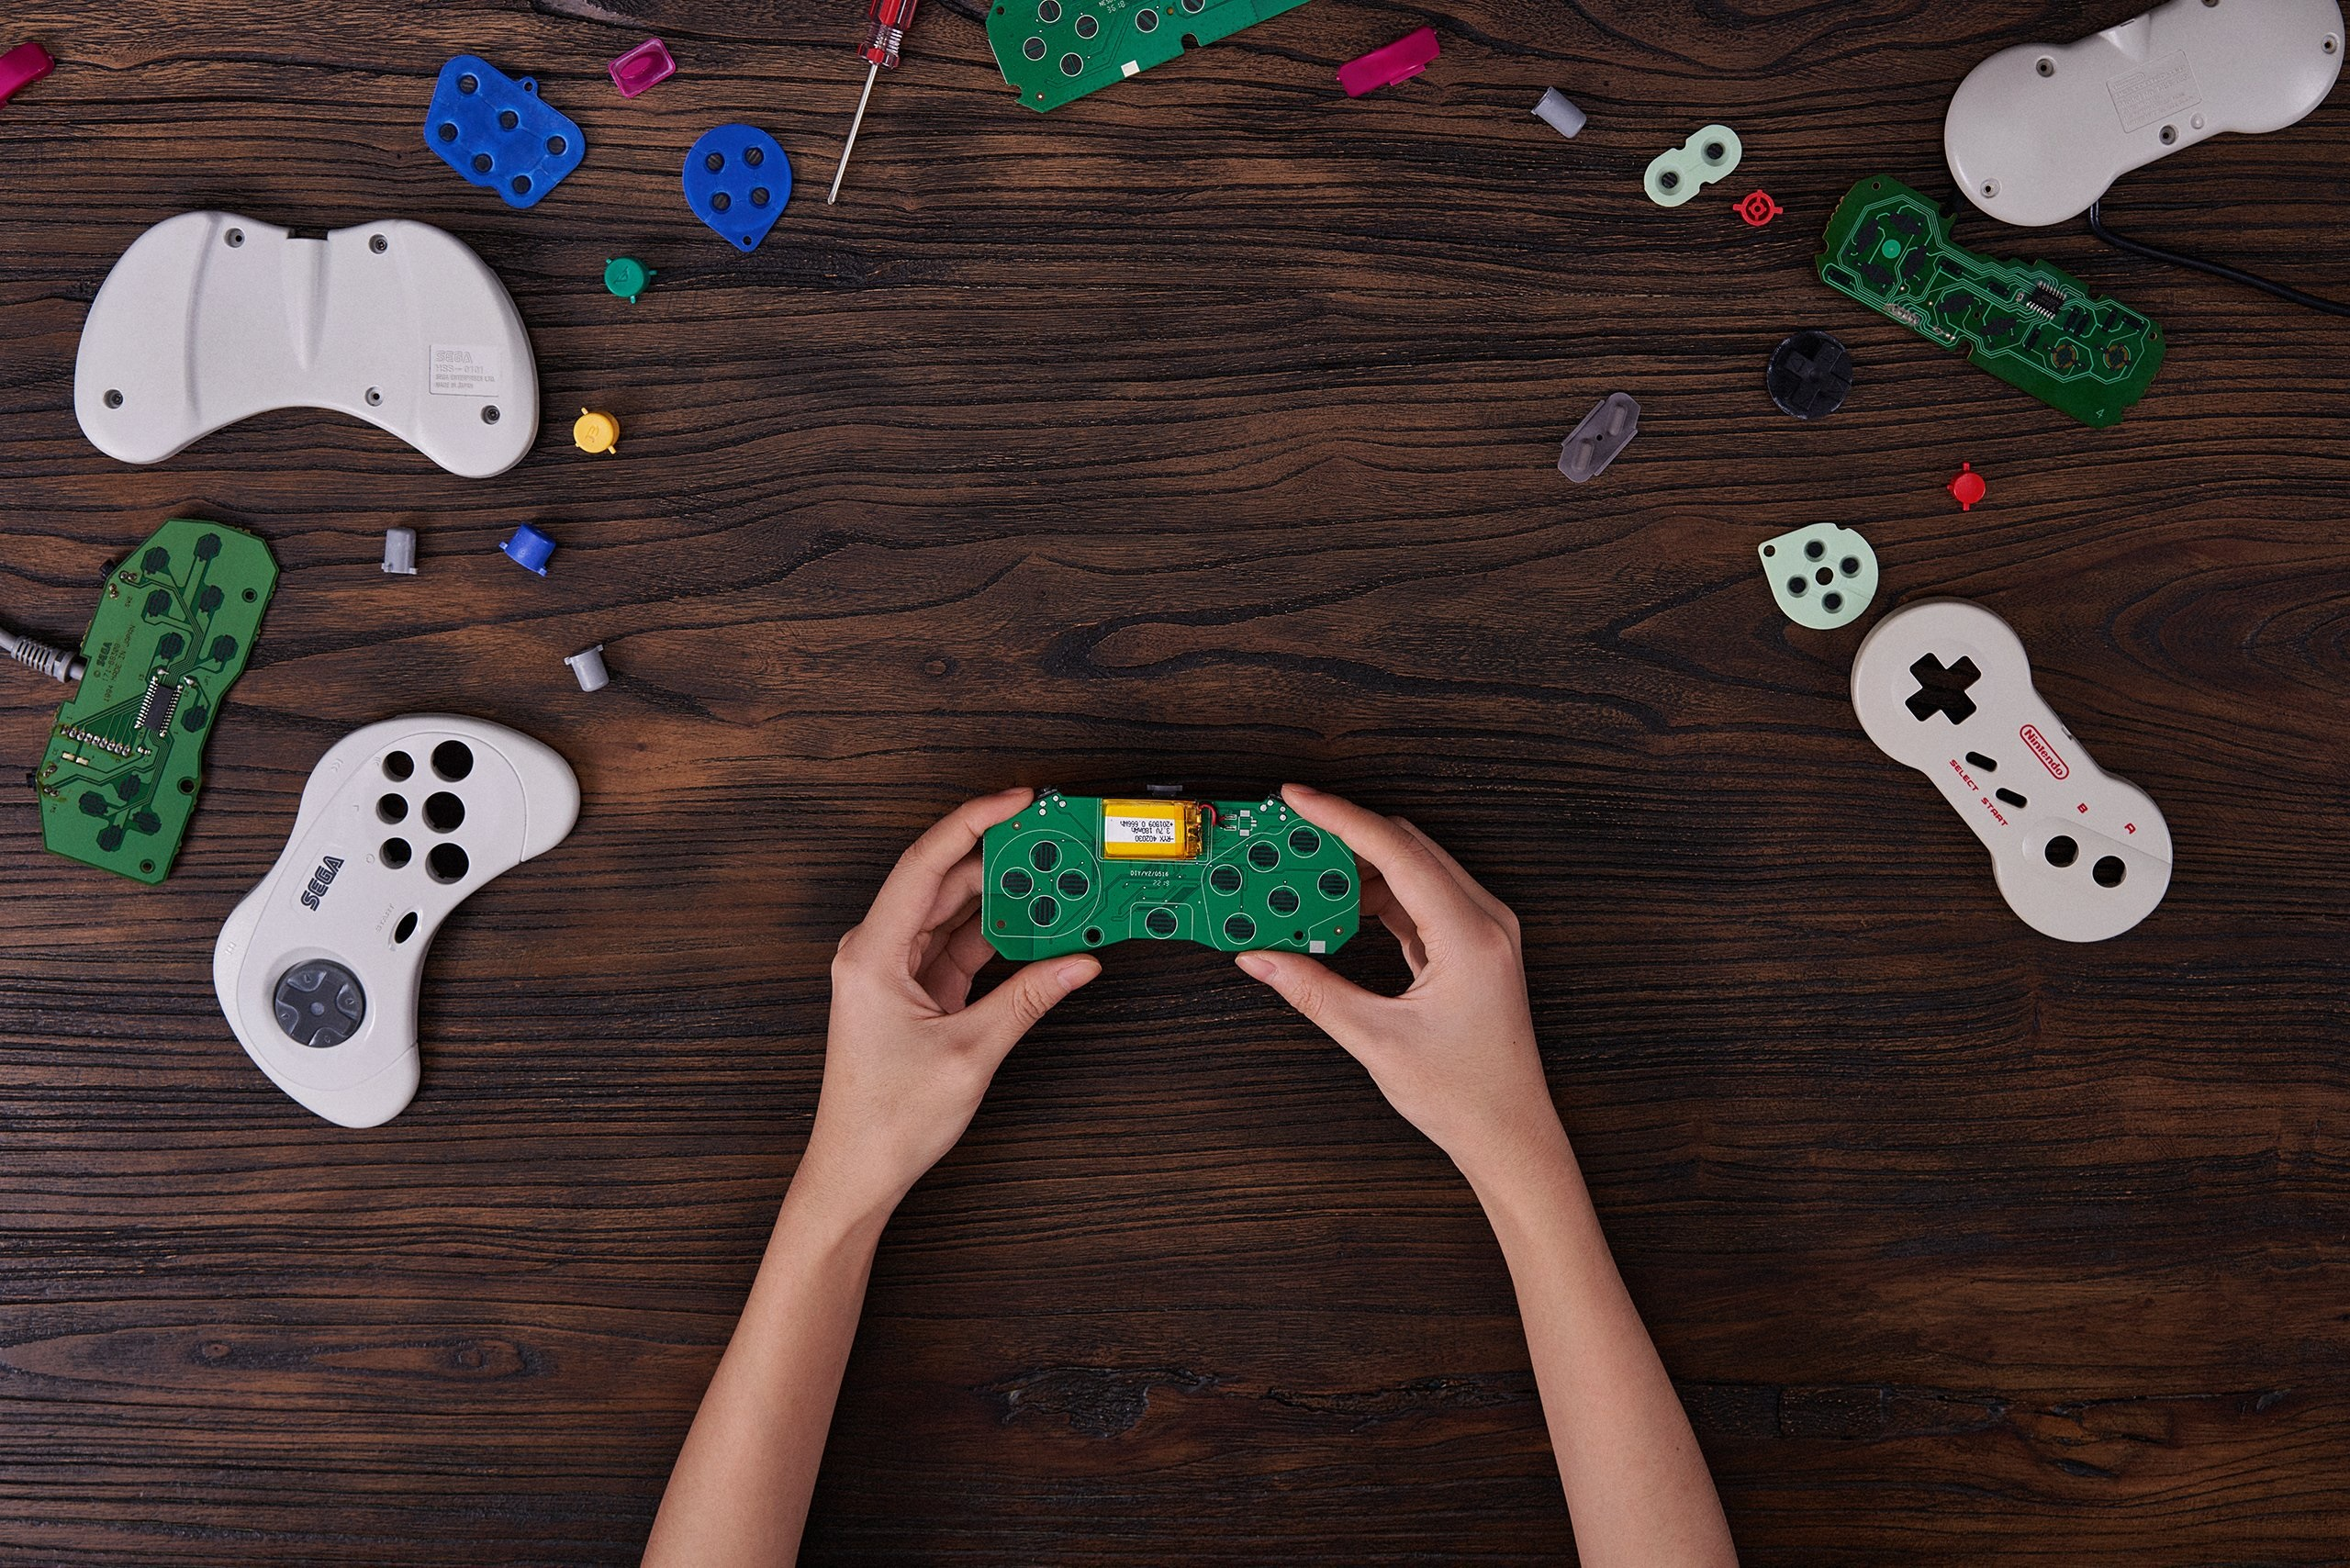 8BitDo DIY kits for Saturn and Nintendo Dogbone controllers